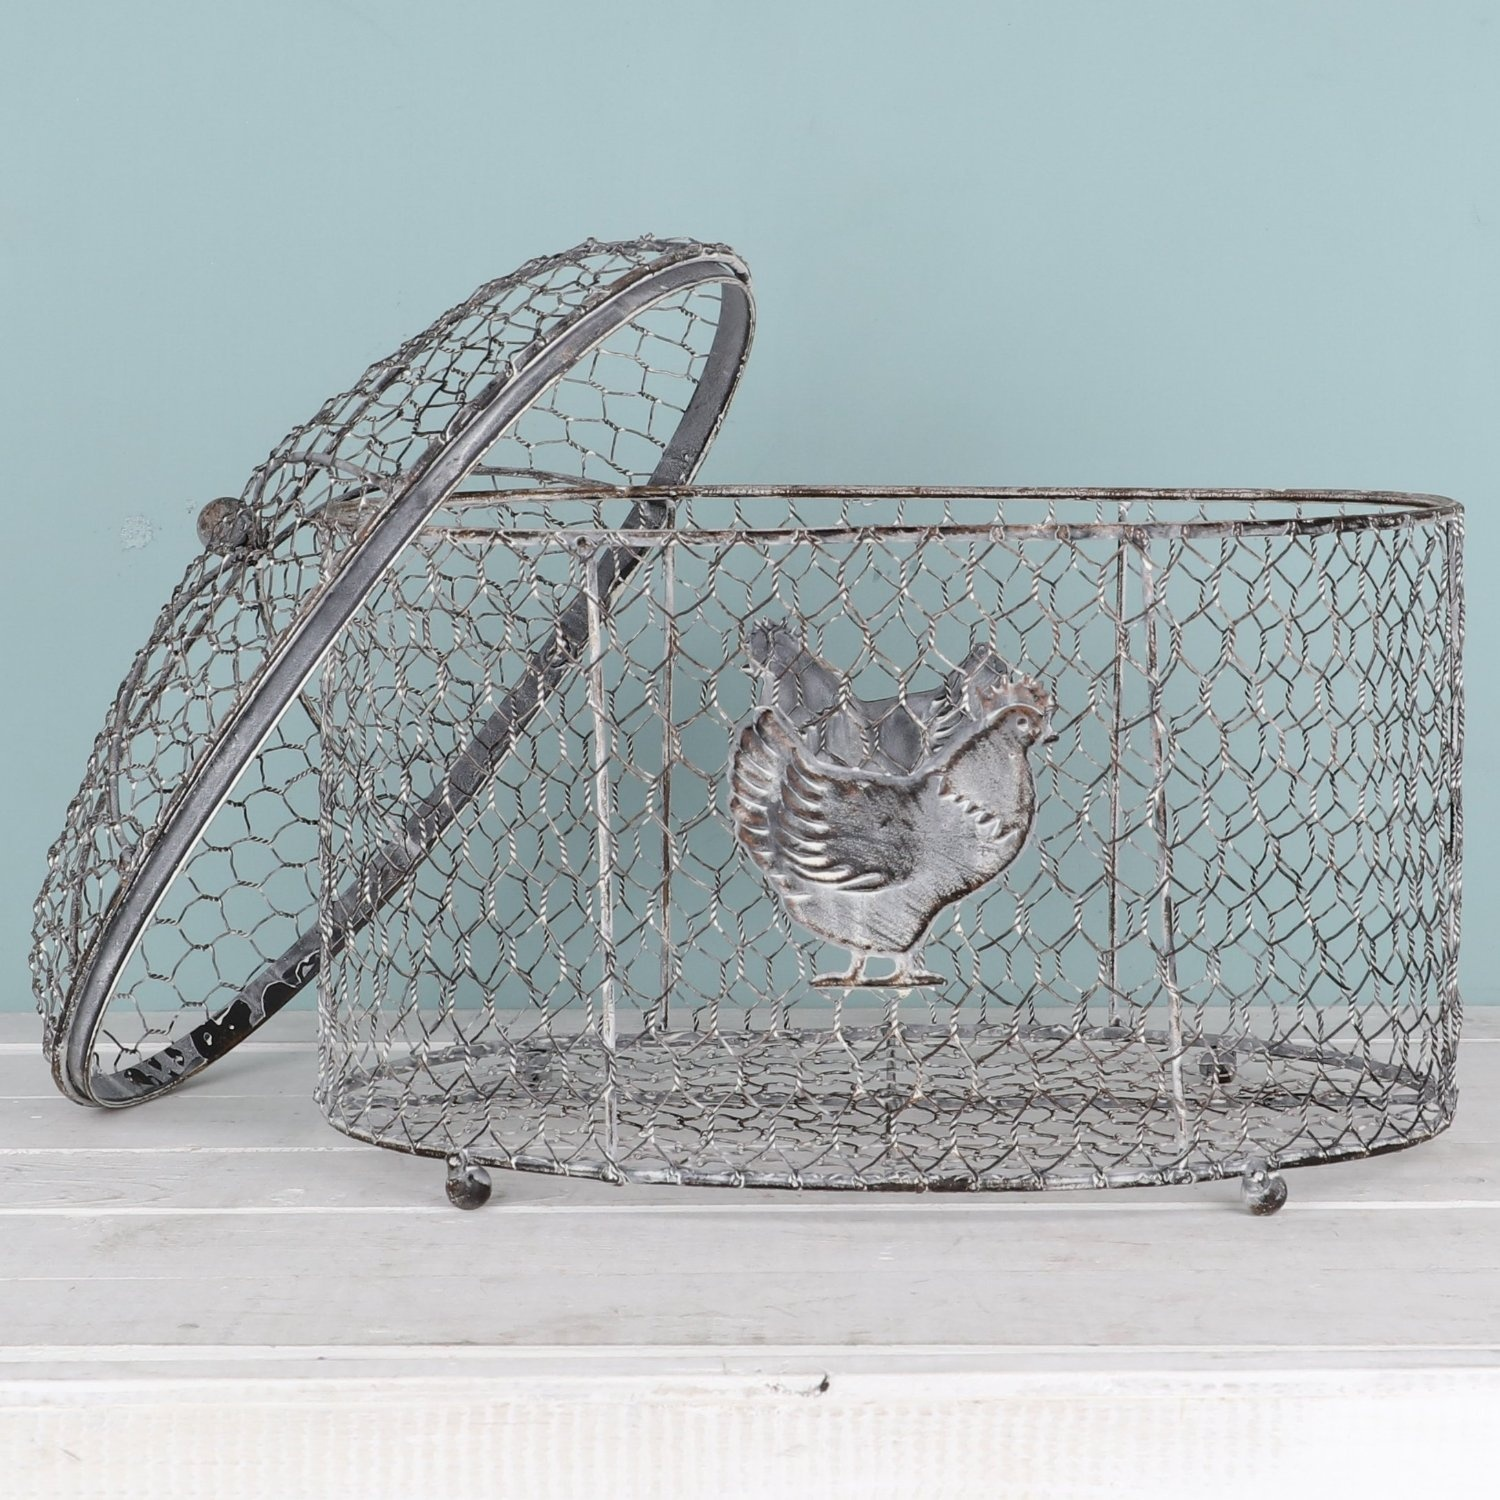 Wire Egg Basket Homeware: Buy Online from Fishpond.co.nz